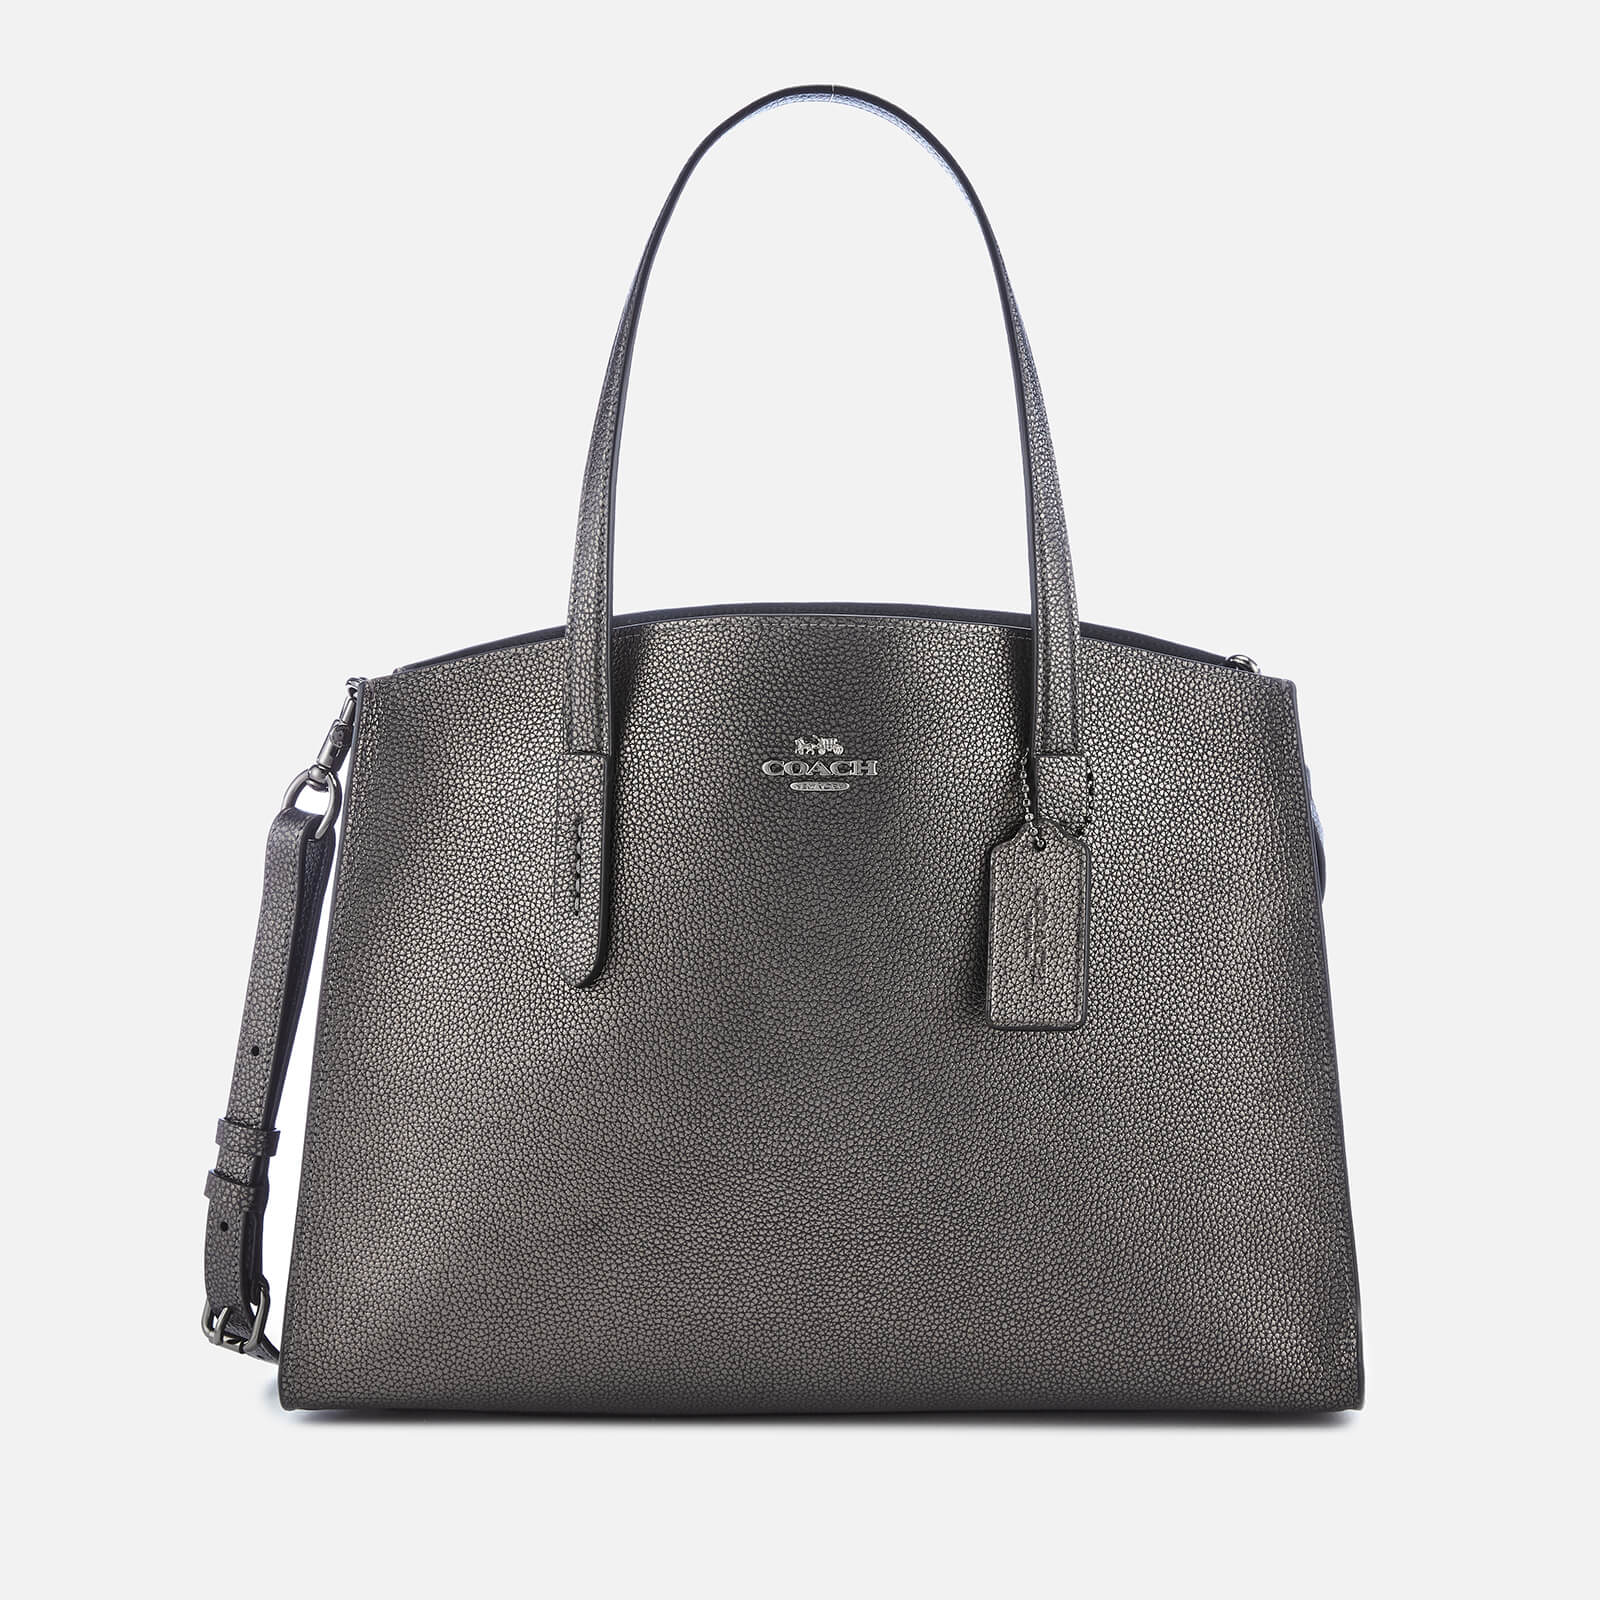 253aeb02c Coach Women's Metallic Leather Charlie Carryall Bag - Metallic ...